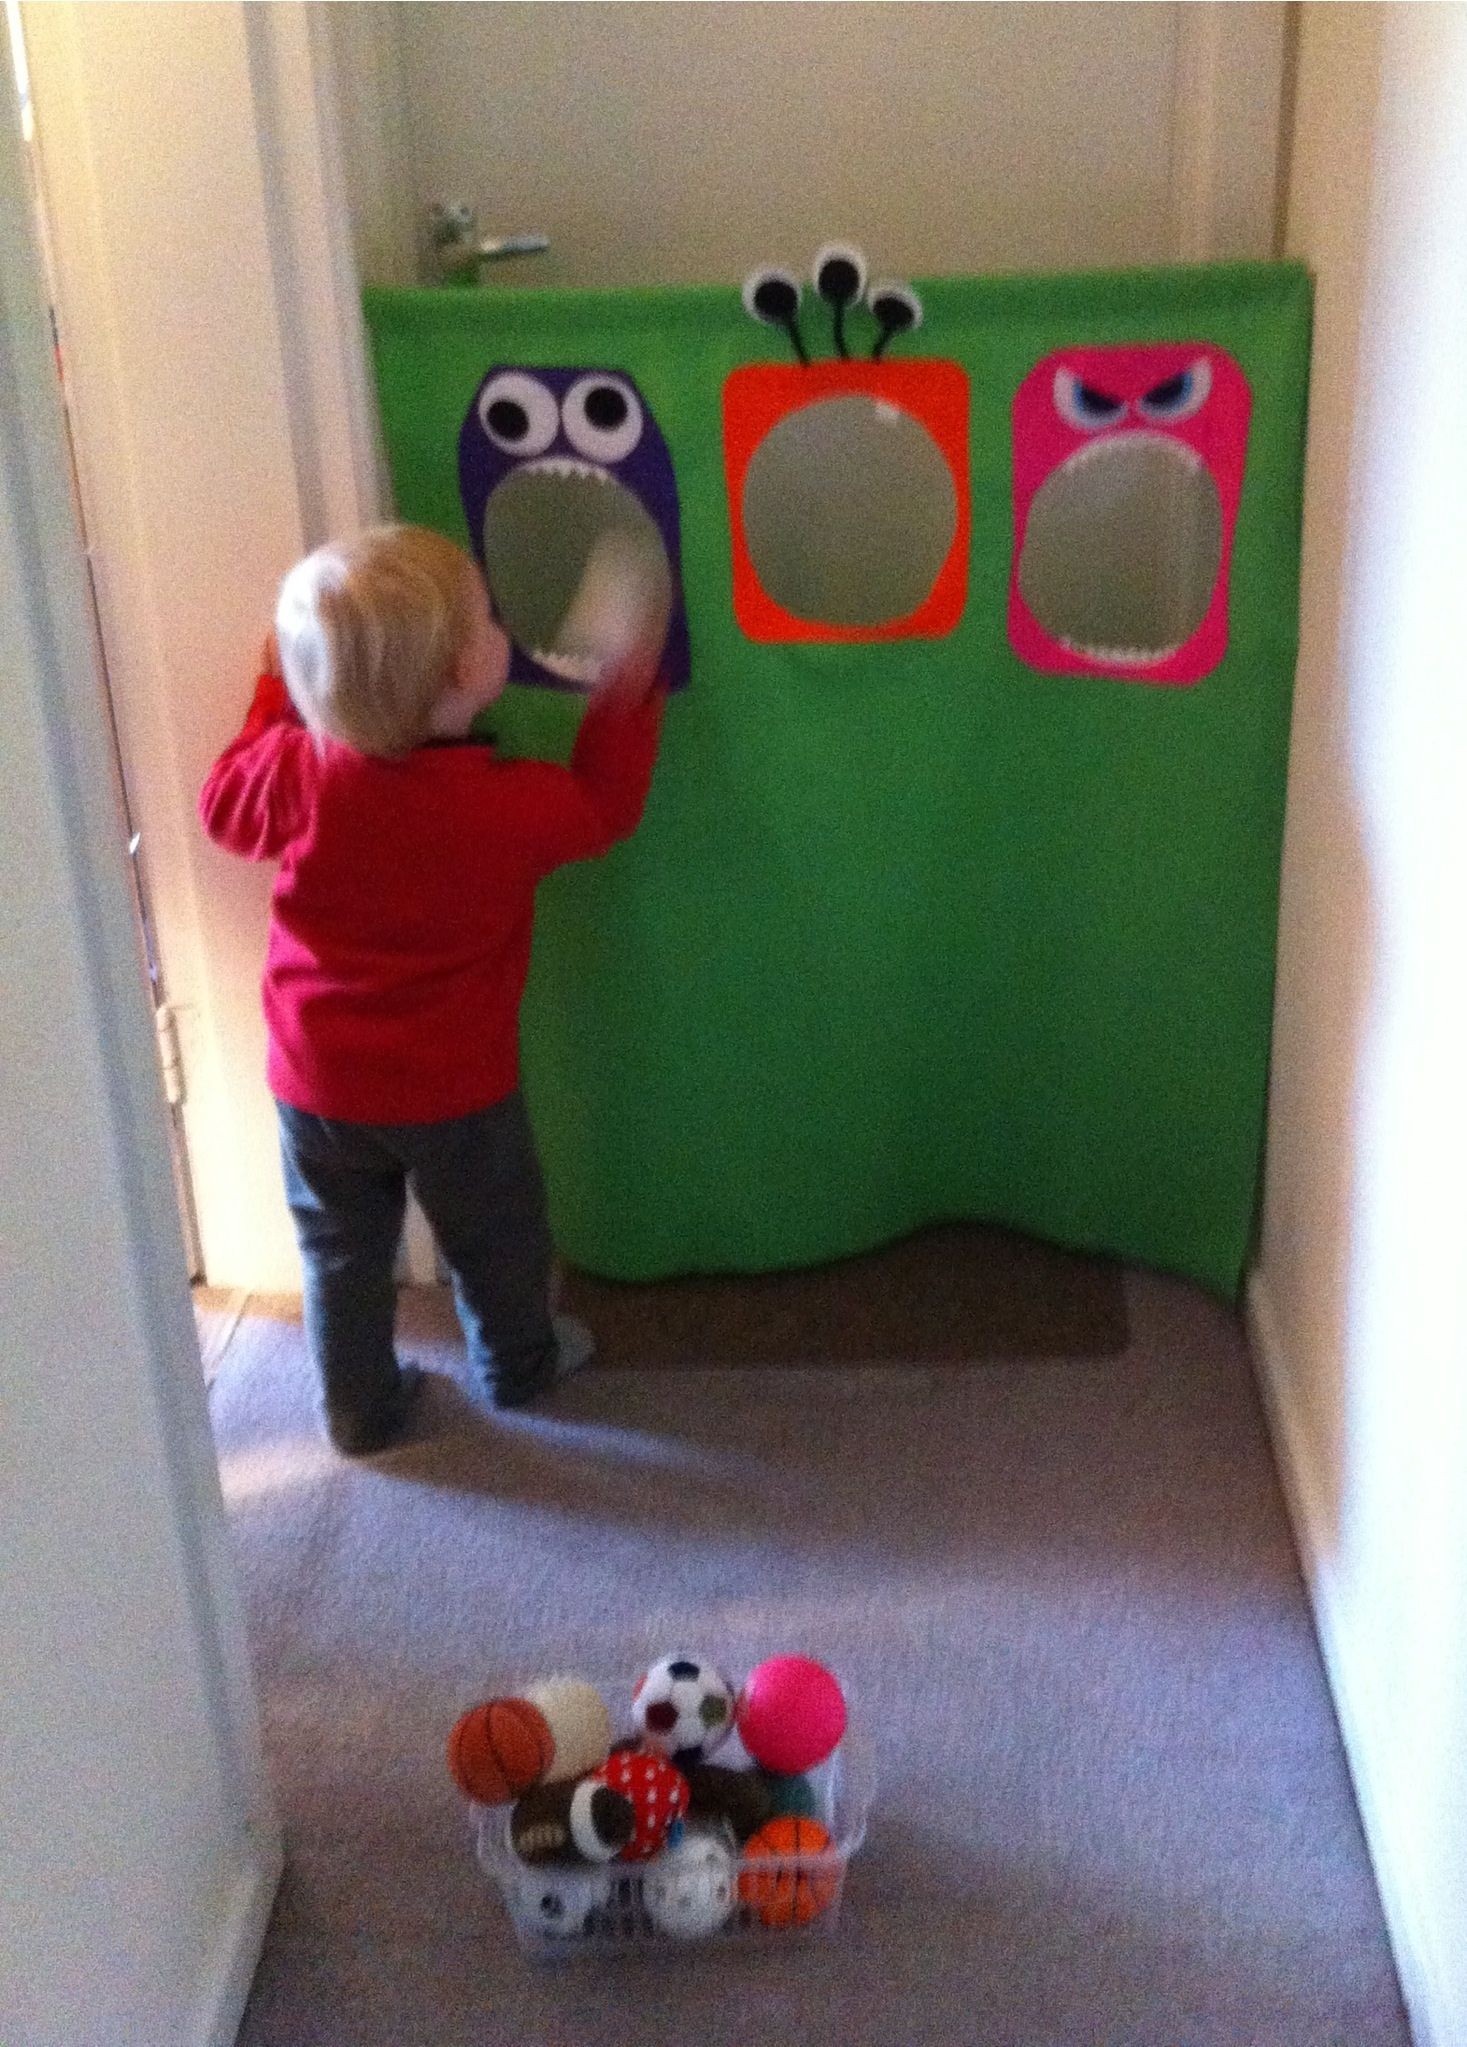 Diy Toddler Quot Monster Quot Ball Bean Bag Toss Game For Burning